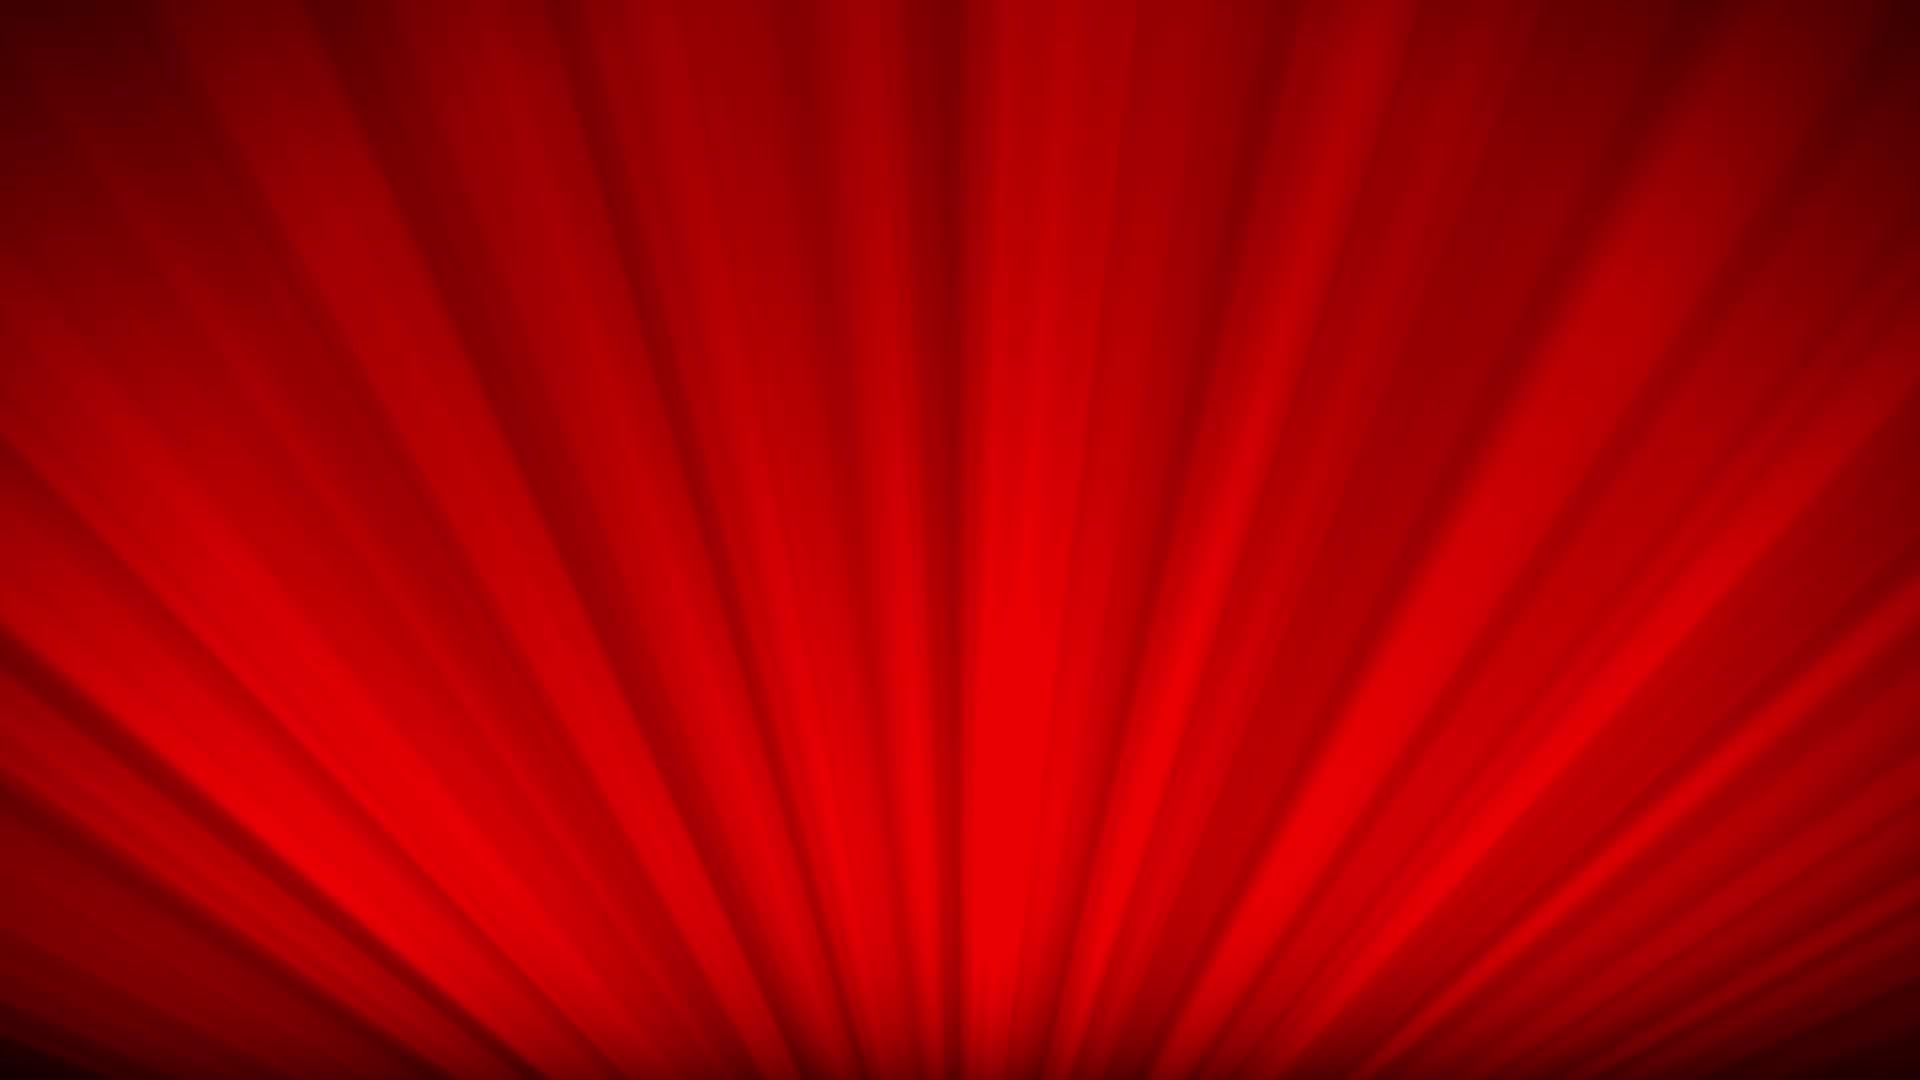 Red Background Red Background Red Background Images